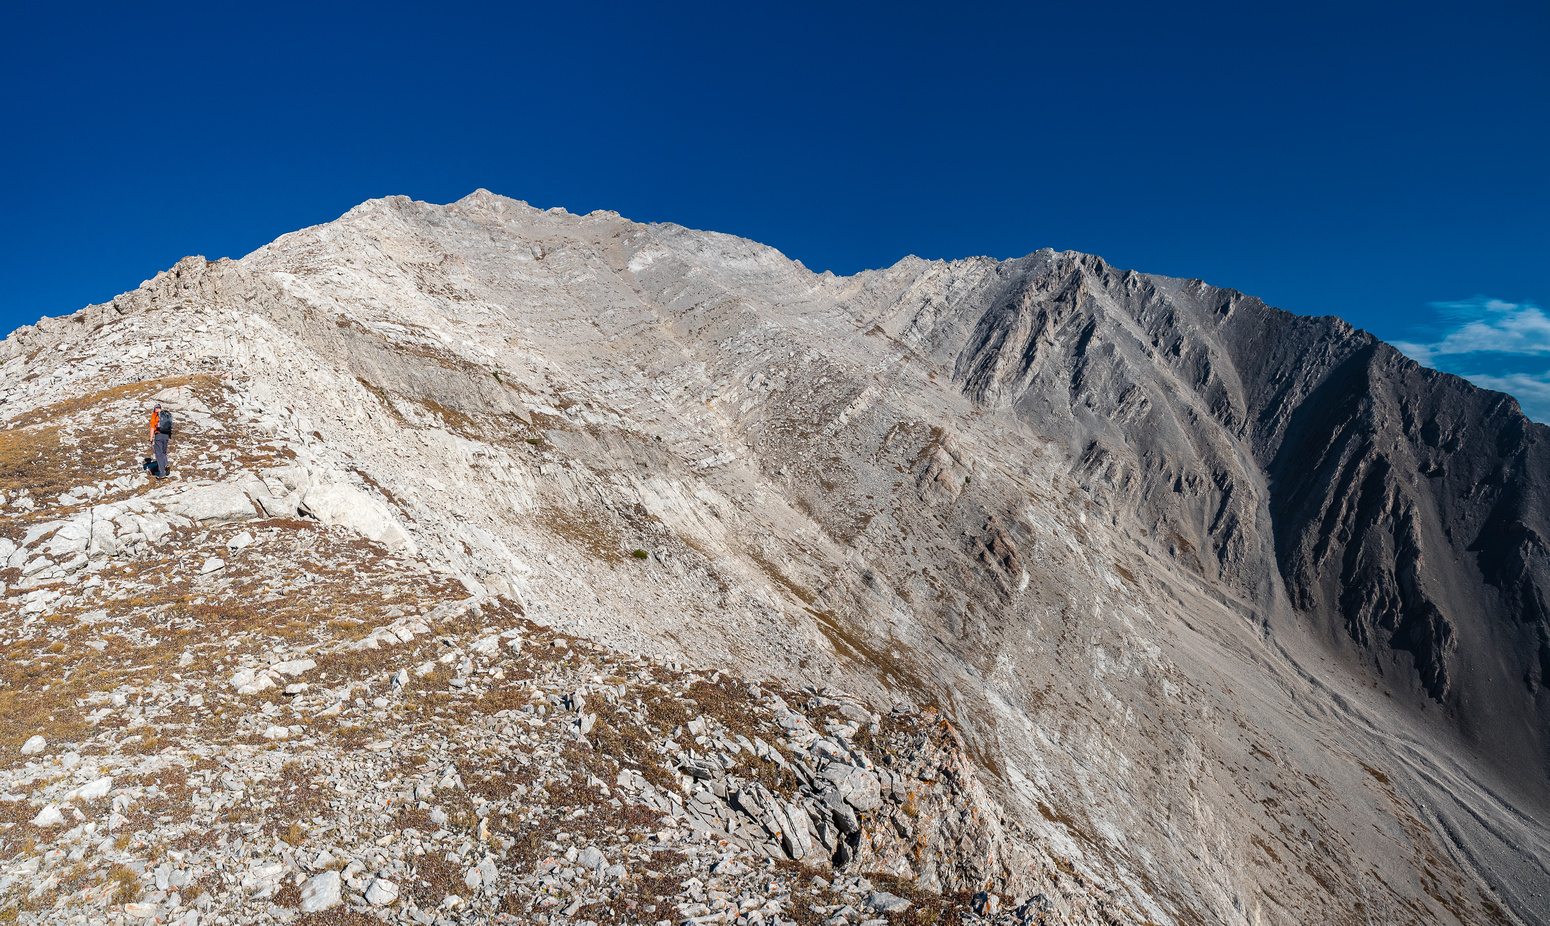 Starting back up the south ridge.